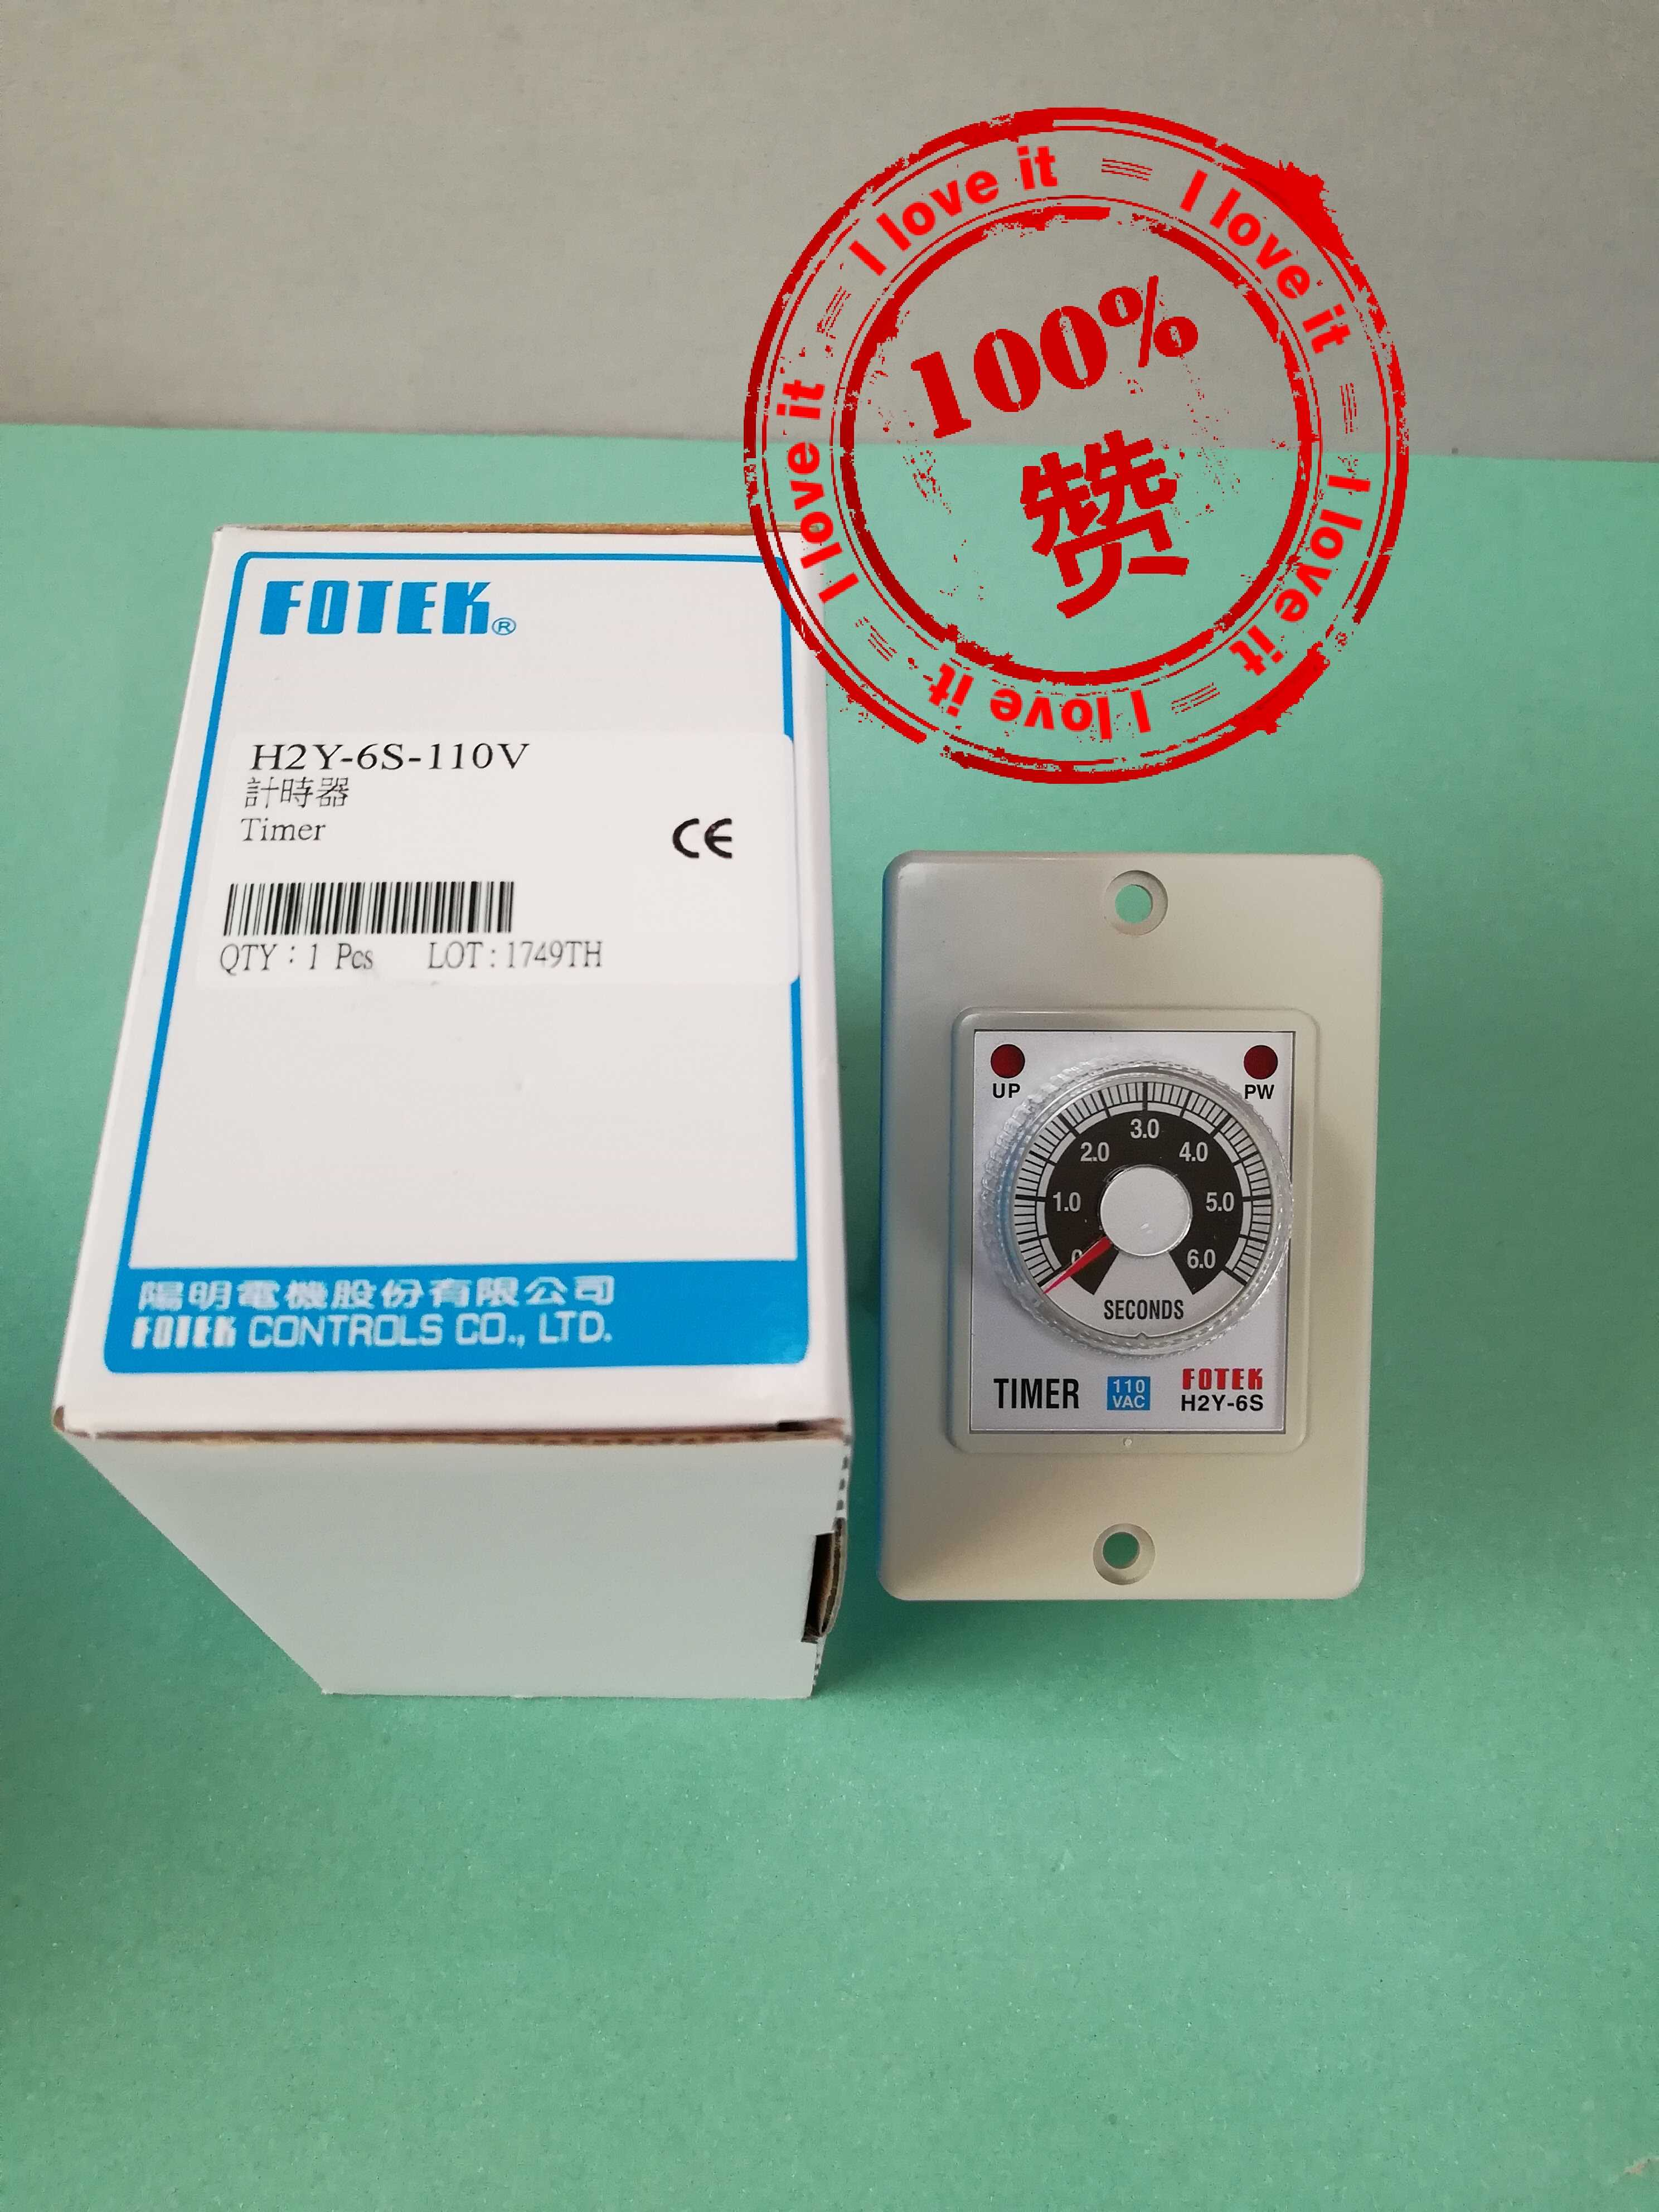 100% imported timer H2Y-6S-110V time relay H2Y100% imported timer H2Y-6S-110V time relay H2Y